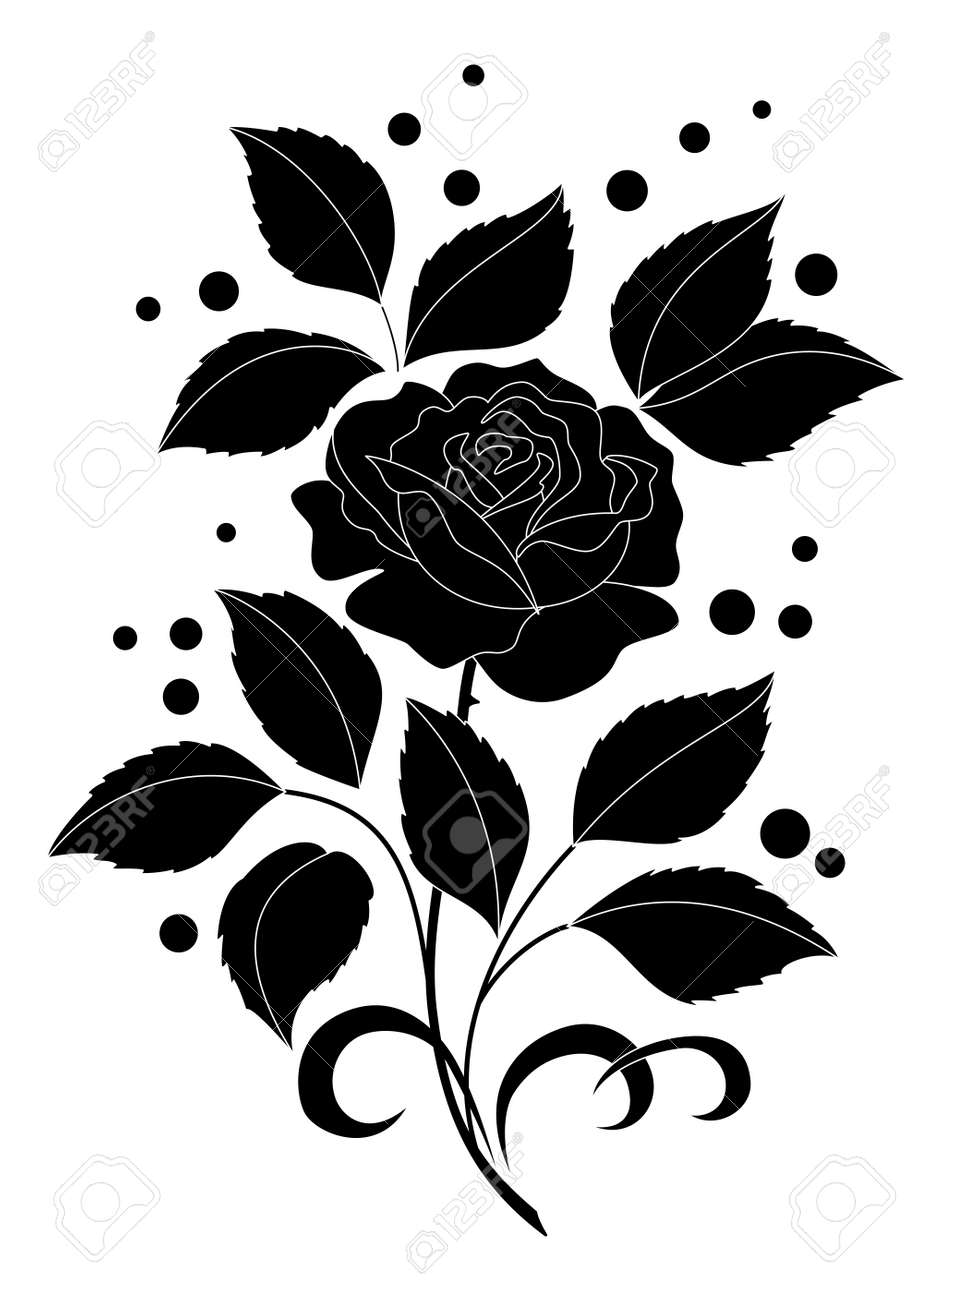 Flower rose with leaves and confetti. Black silhouettes on white background. Stock Vector - 12173610